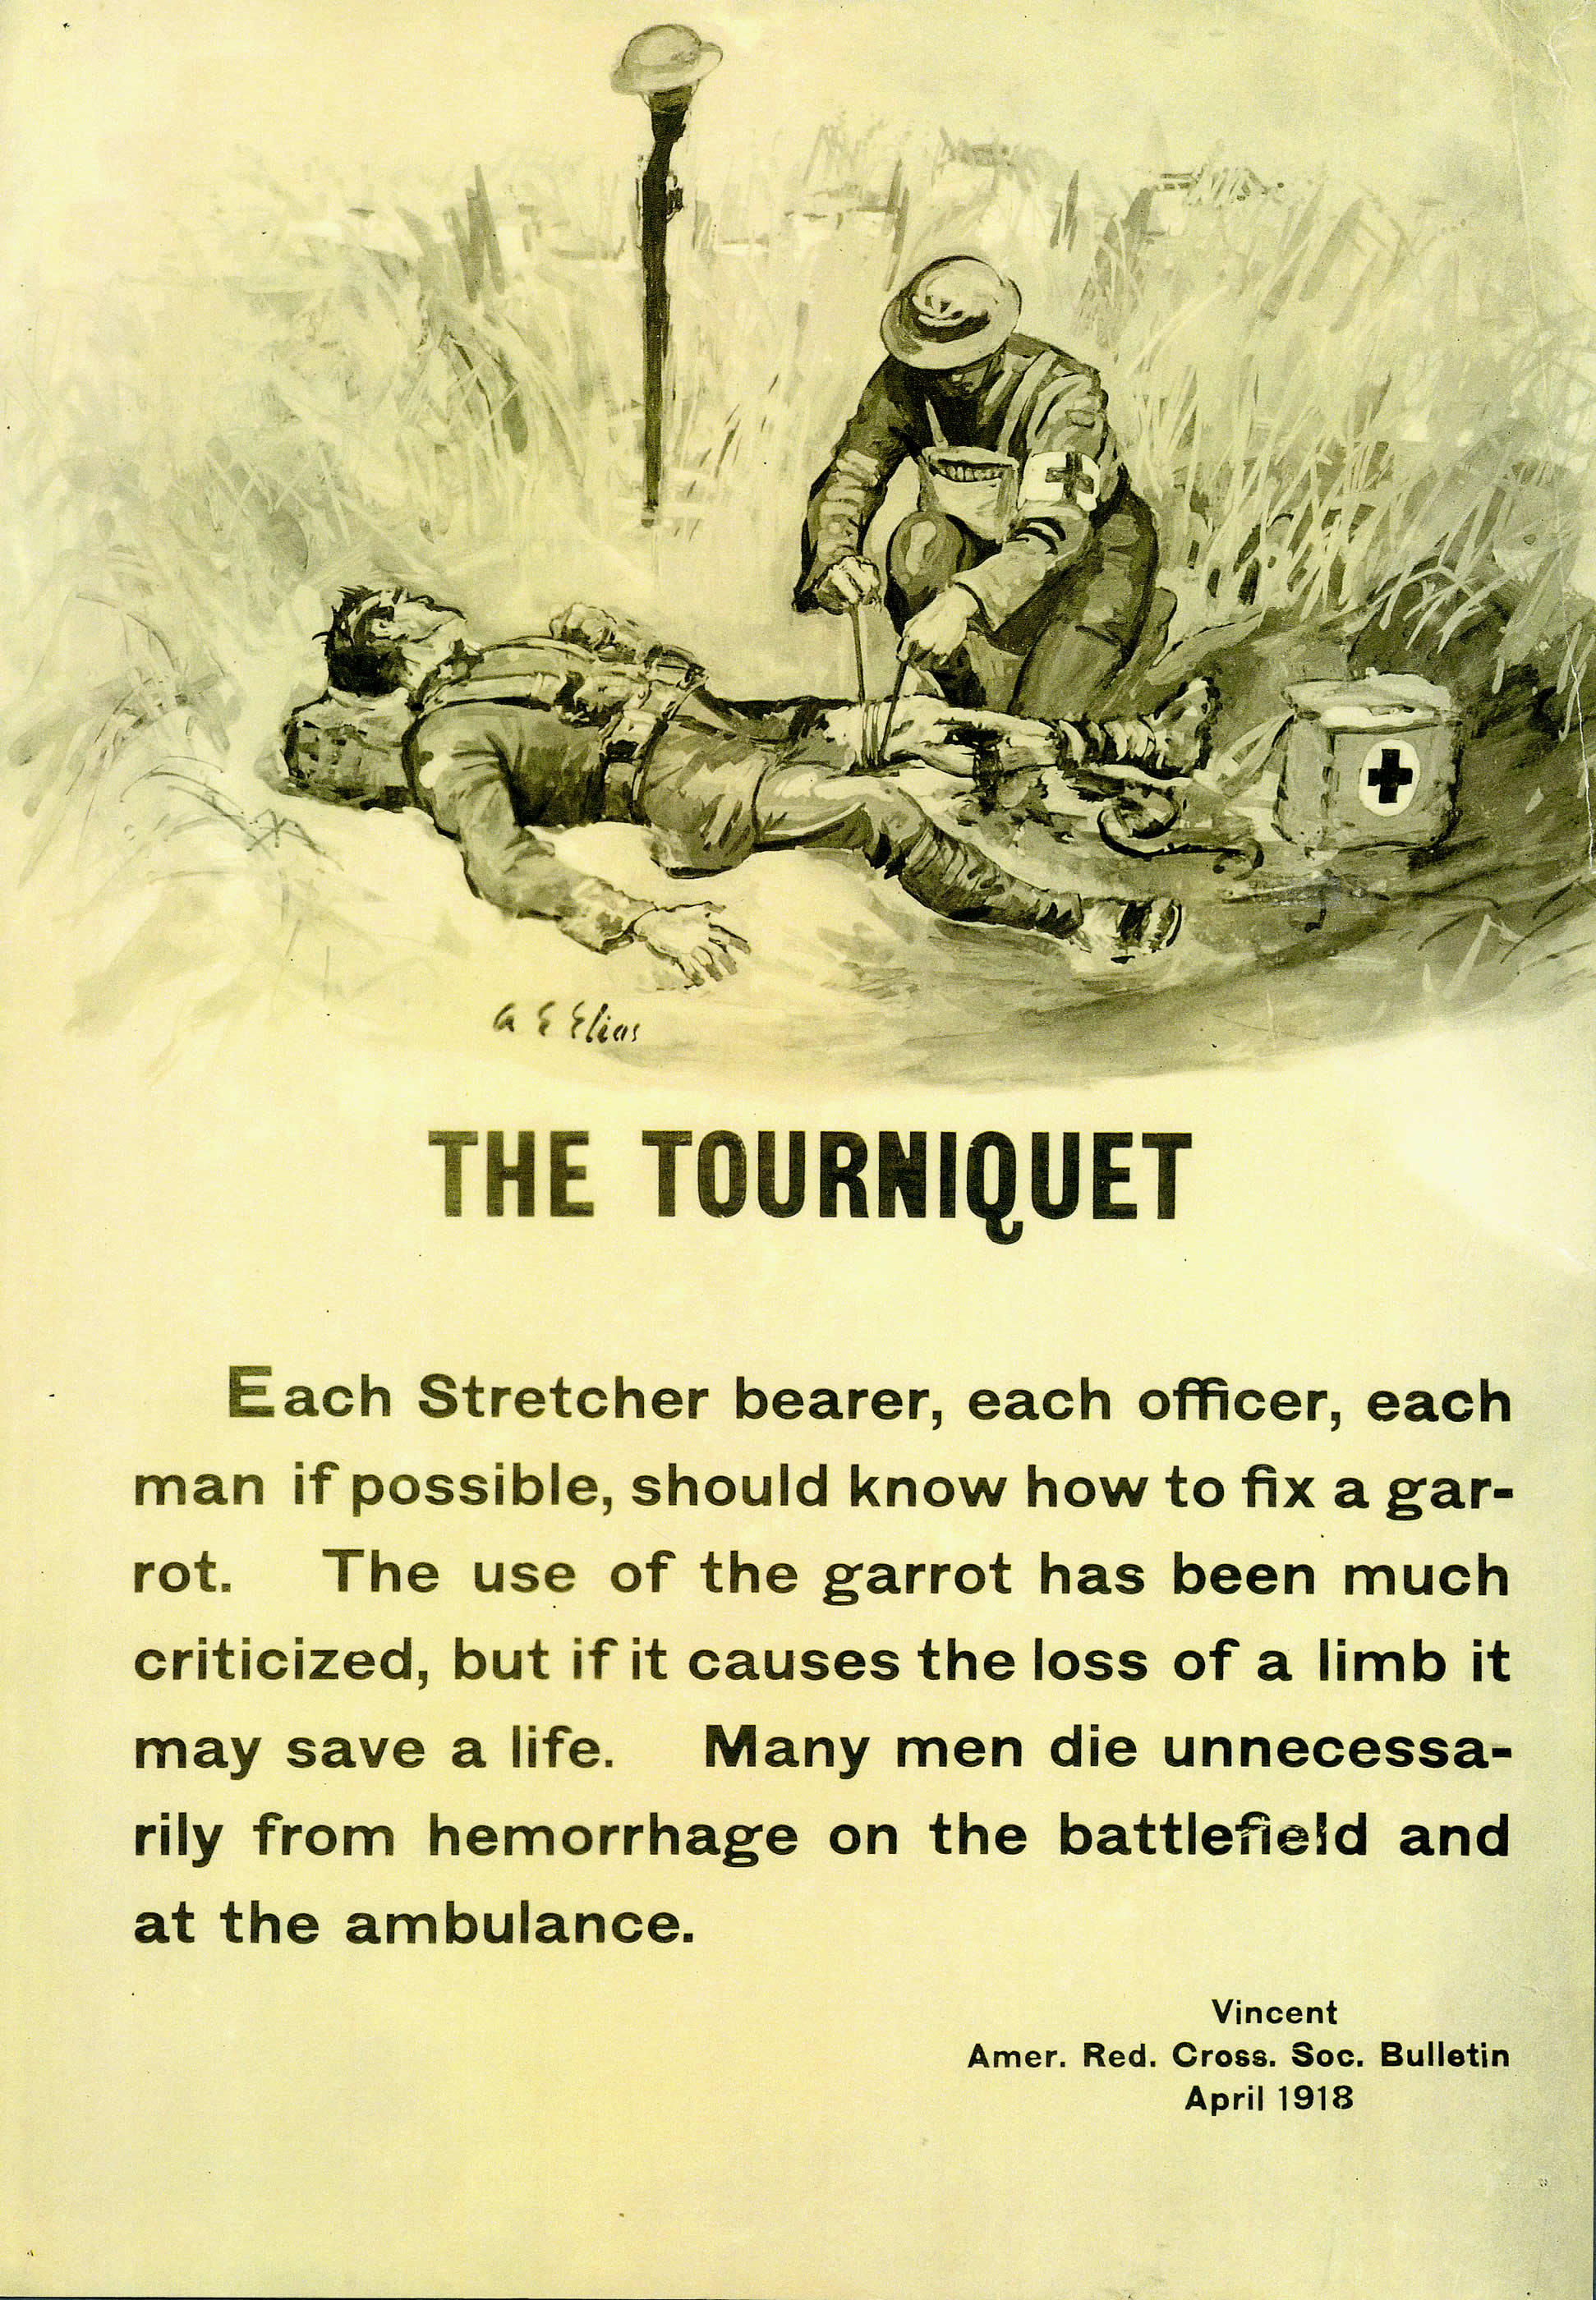 The Tourniquet